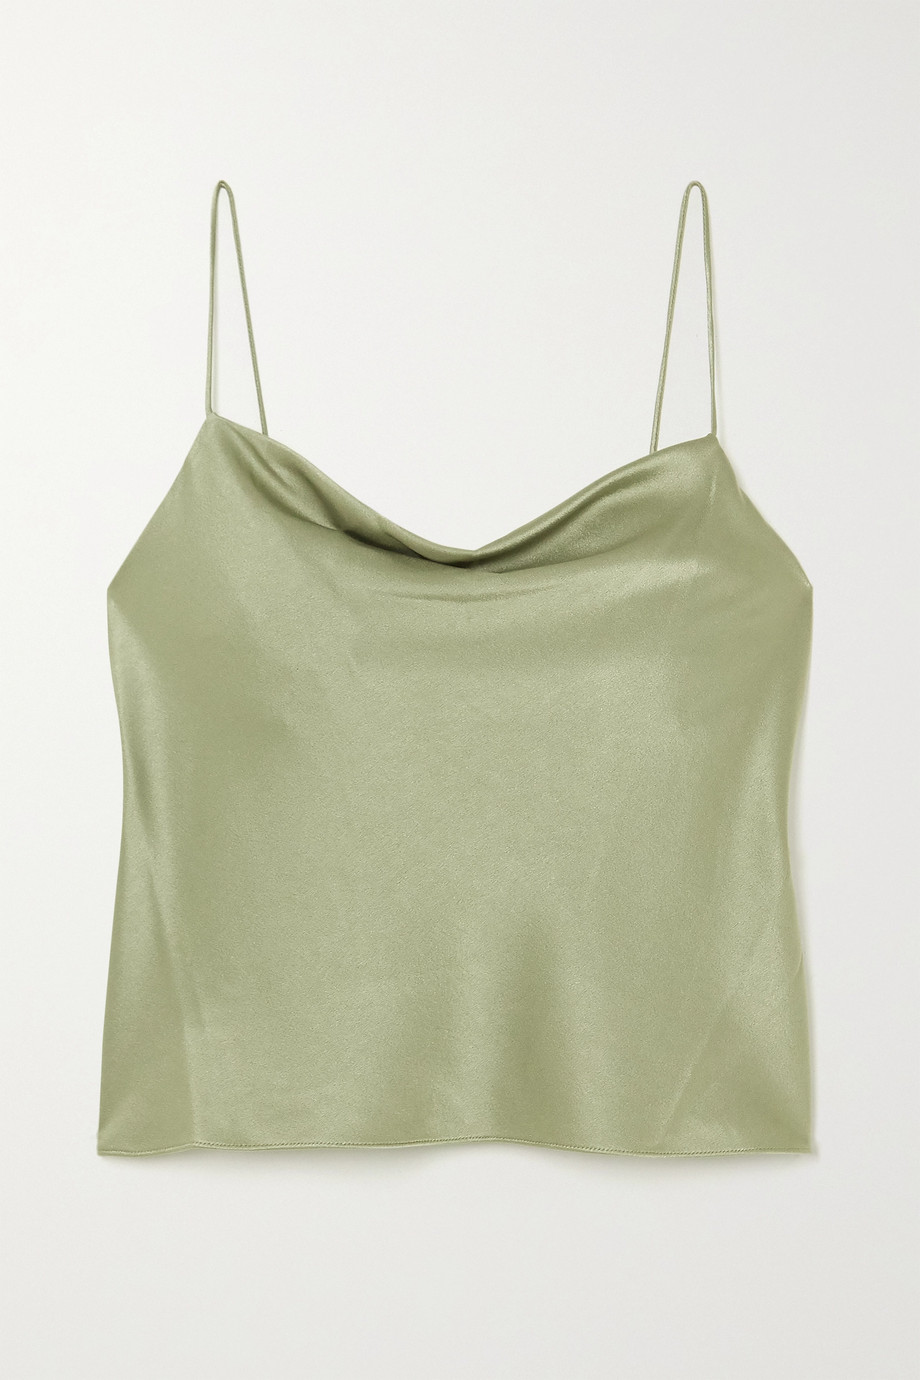 Alice + Olivia Harmon draped hammered-satin camisole